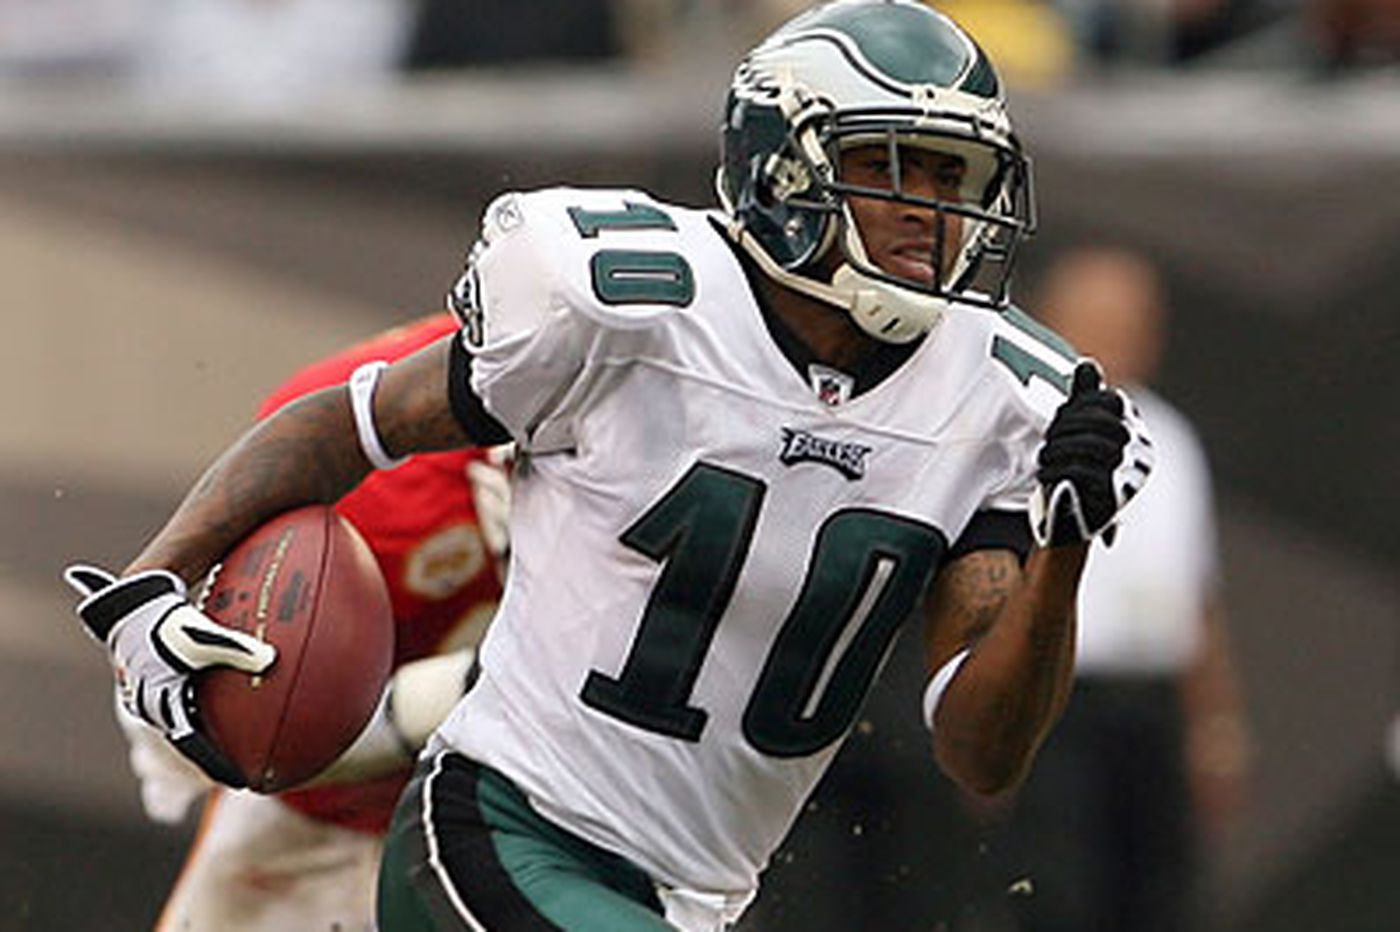 Eagles' DeSean Jackson: 'Everything will work out'